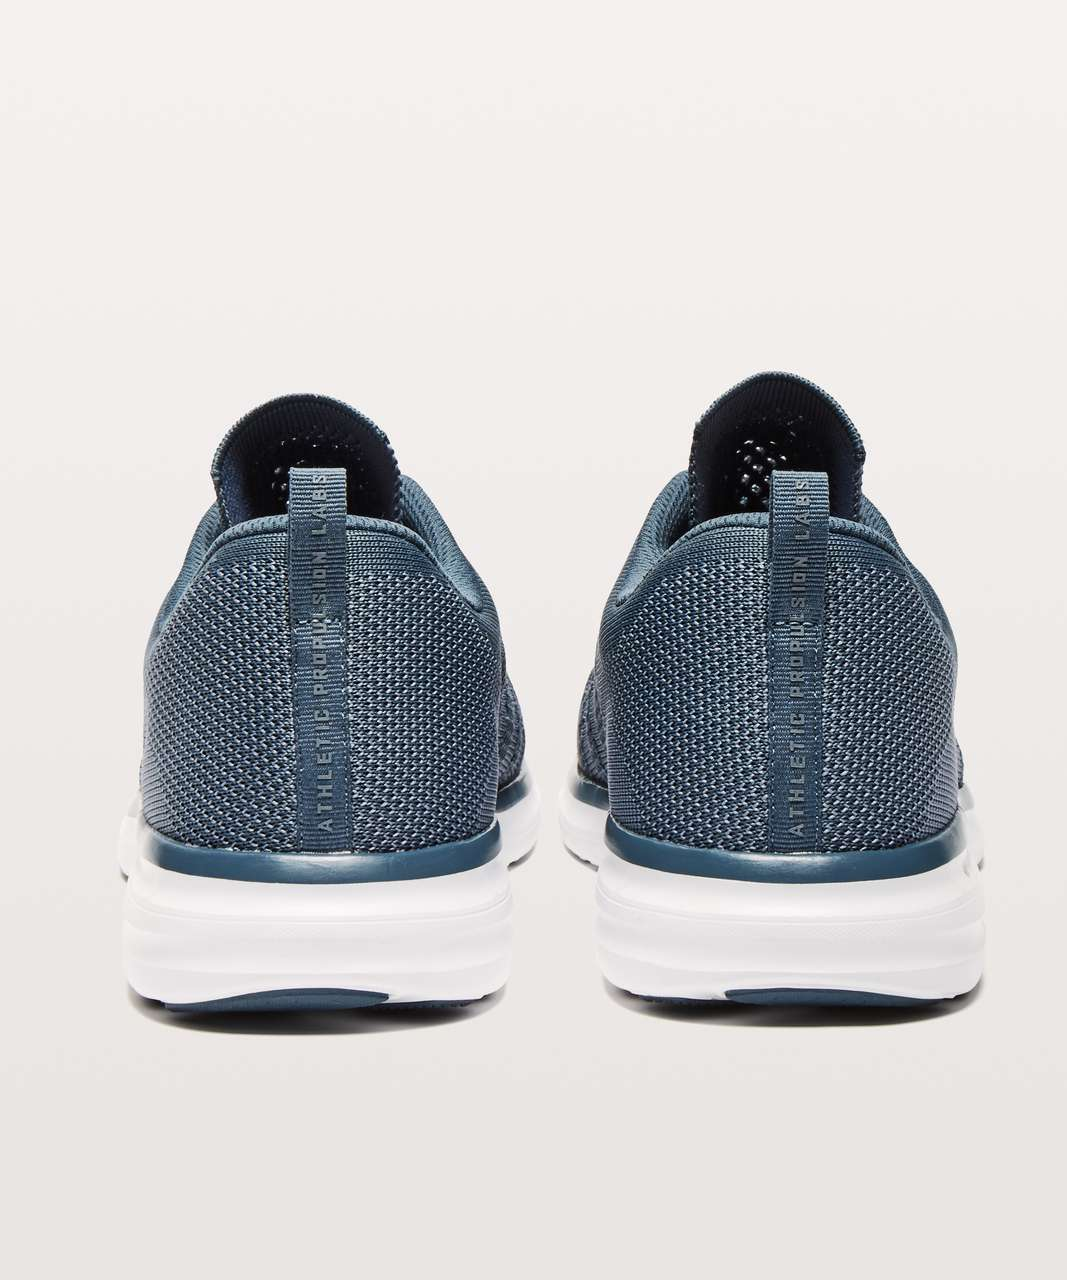 Lululemon Mens TechLoom Pro Shoe *Exclusive - Iron Blue / White